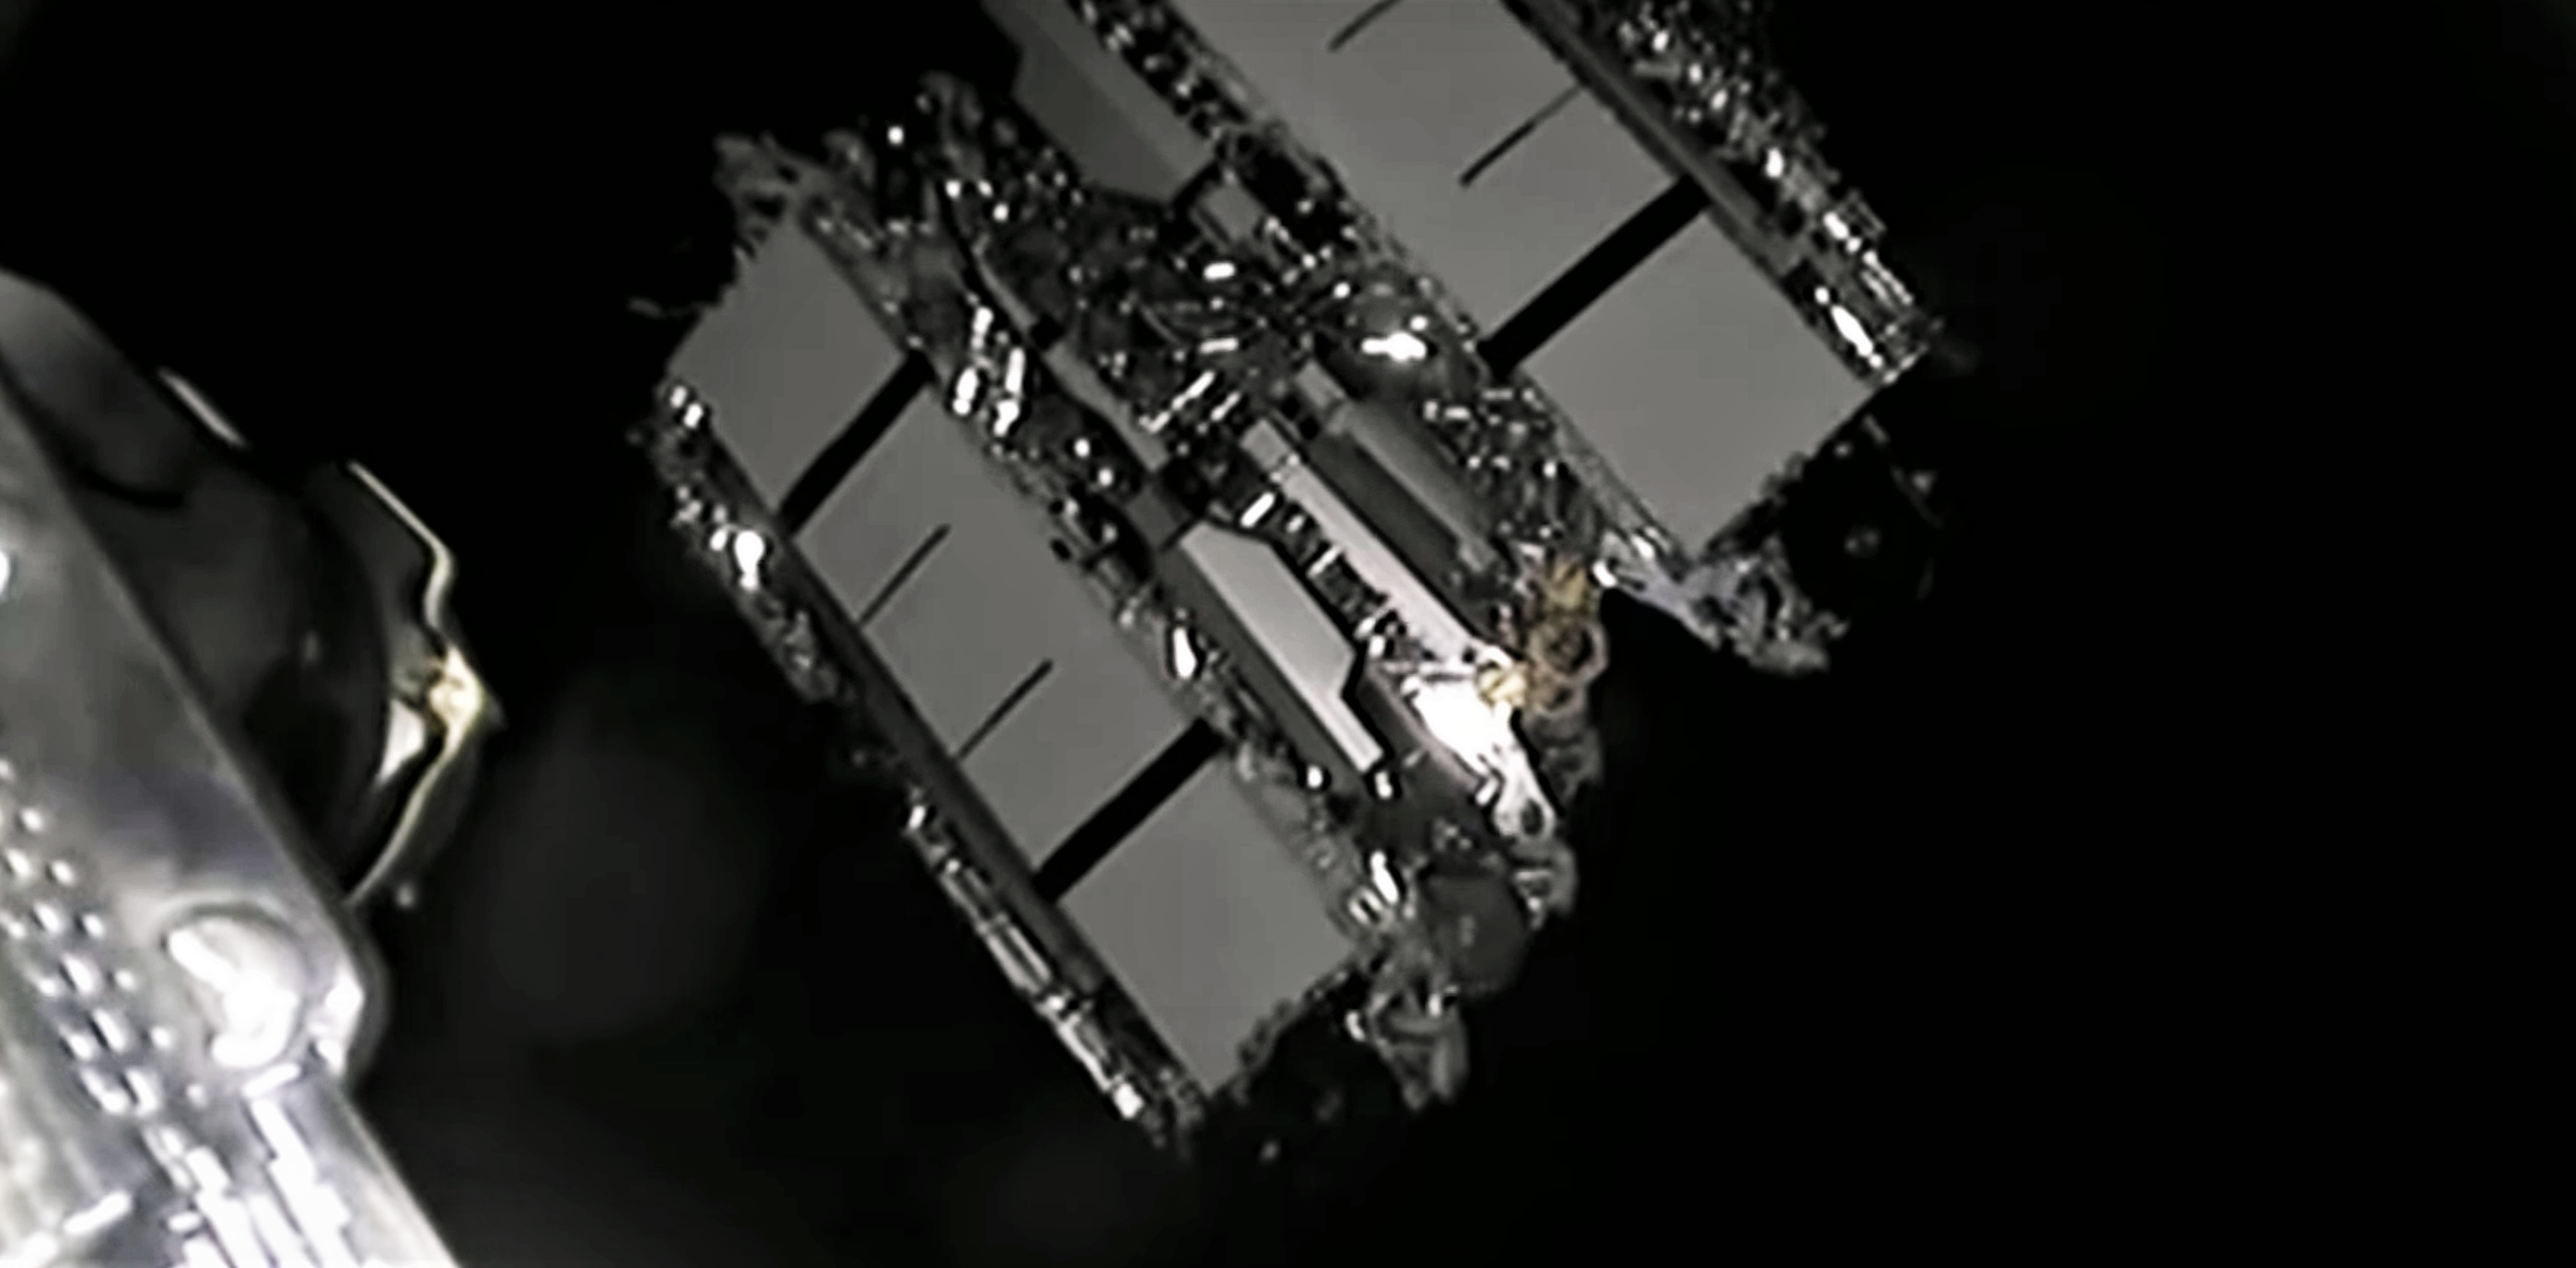 Starlink-15 Falcon 9 B1049 LC-40 112420 webcast (SpaceX) deploy 1